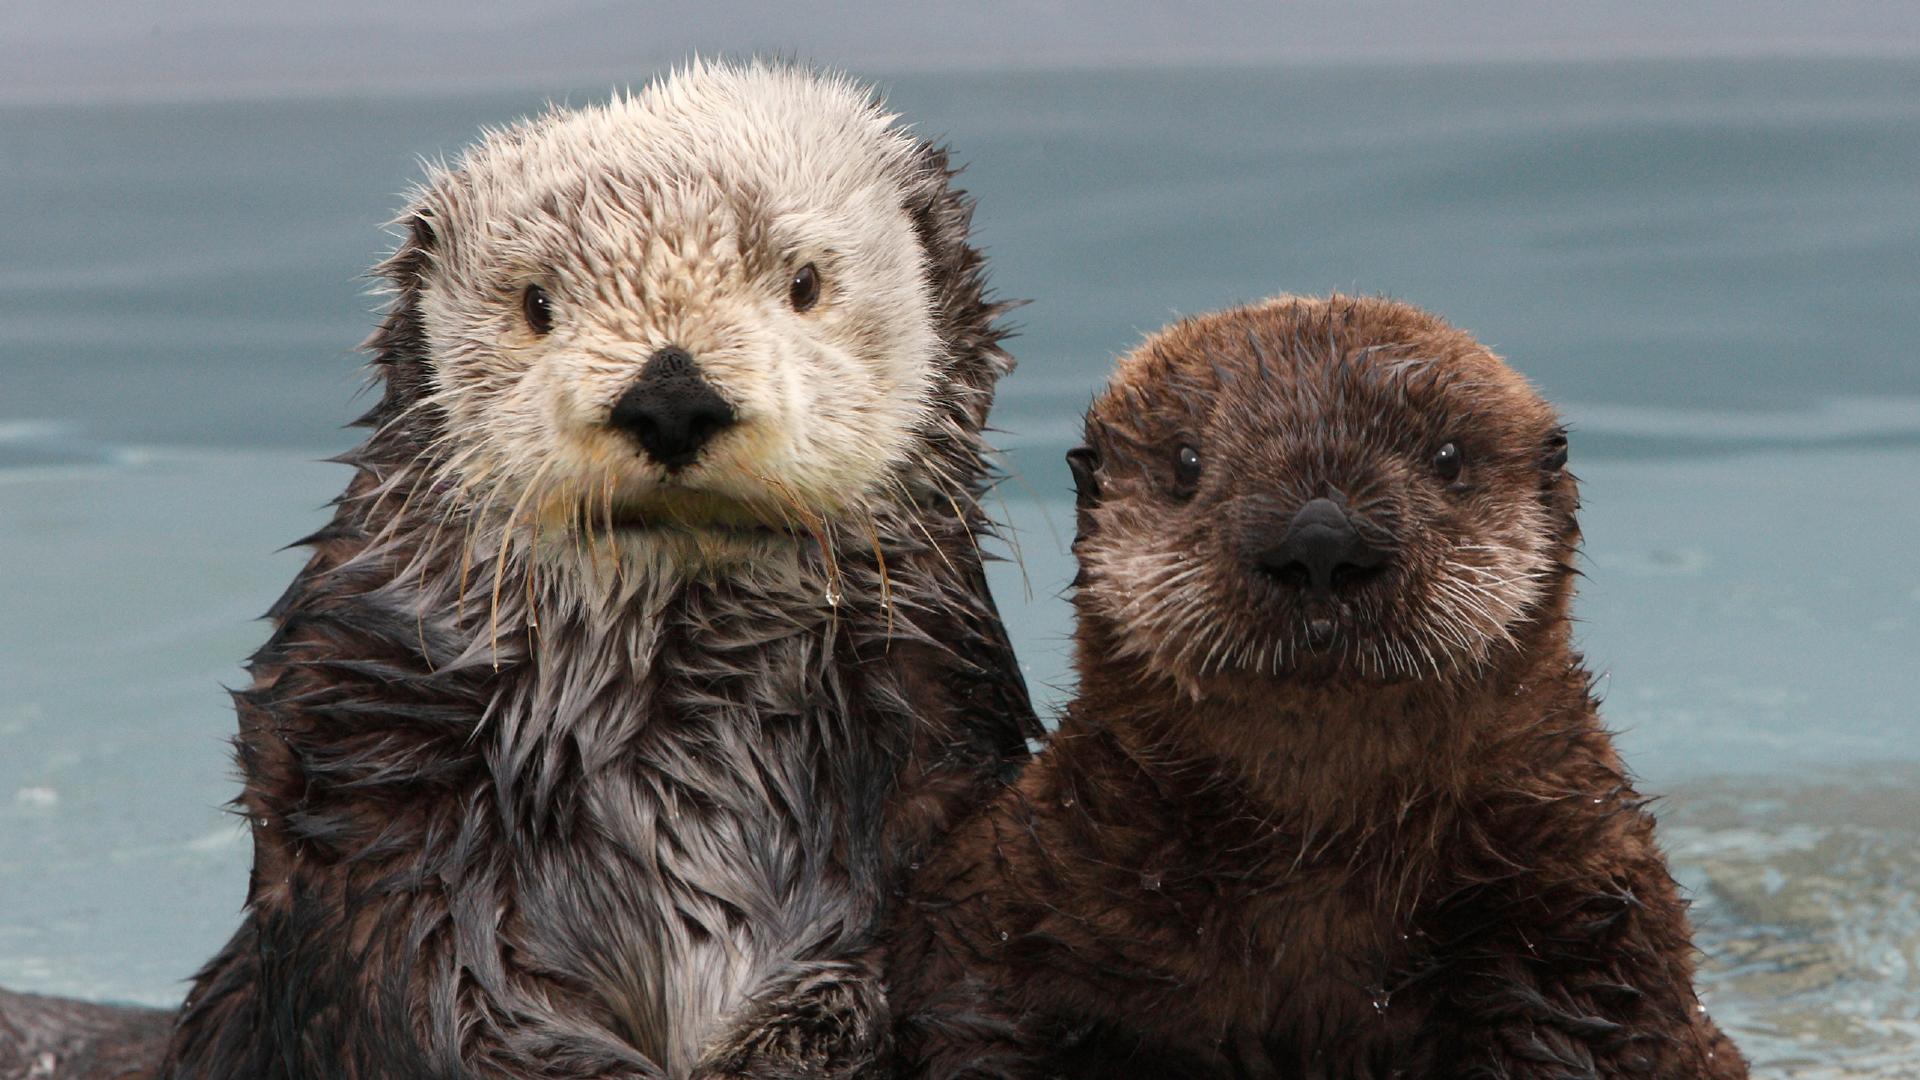 Southern Sea Otter Photo Gallery